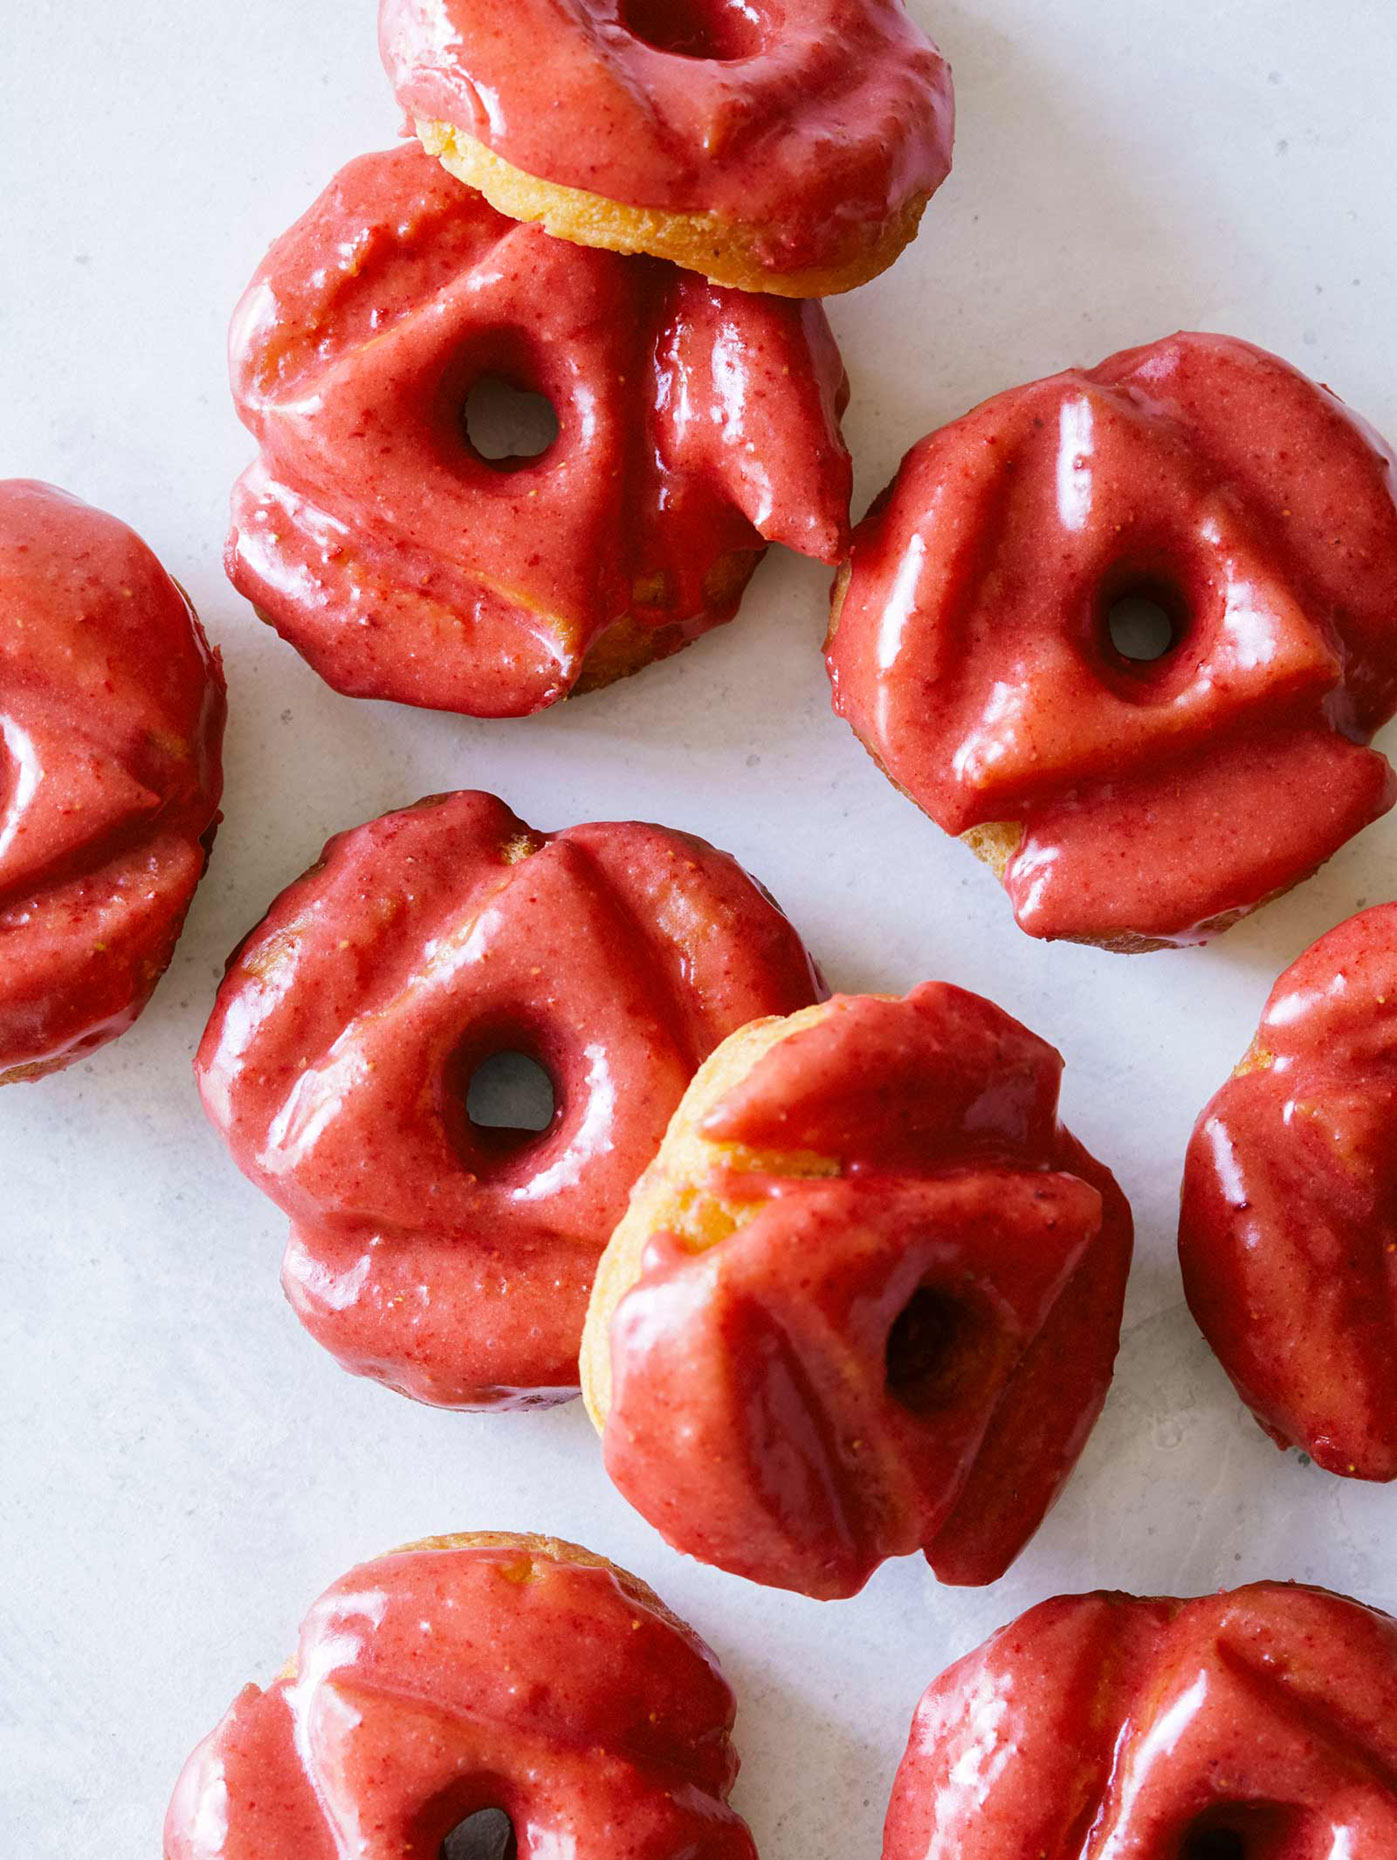 strawberry_glazed_old_fashioned_doughnuts_Food_photographer